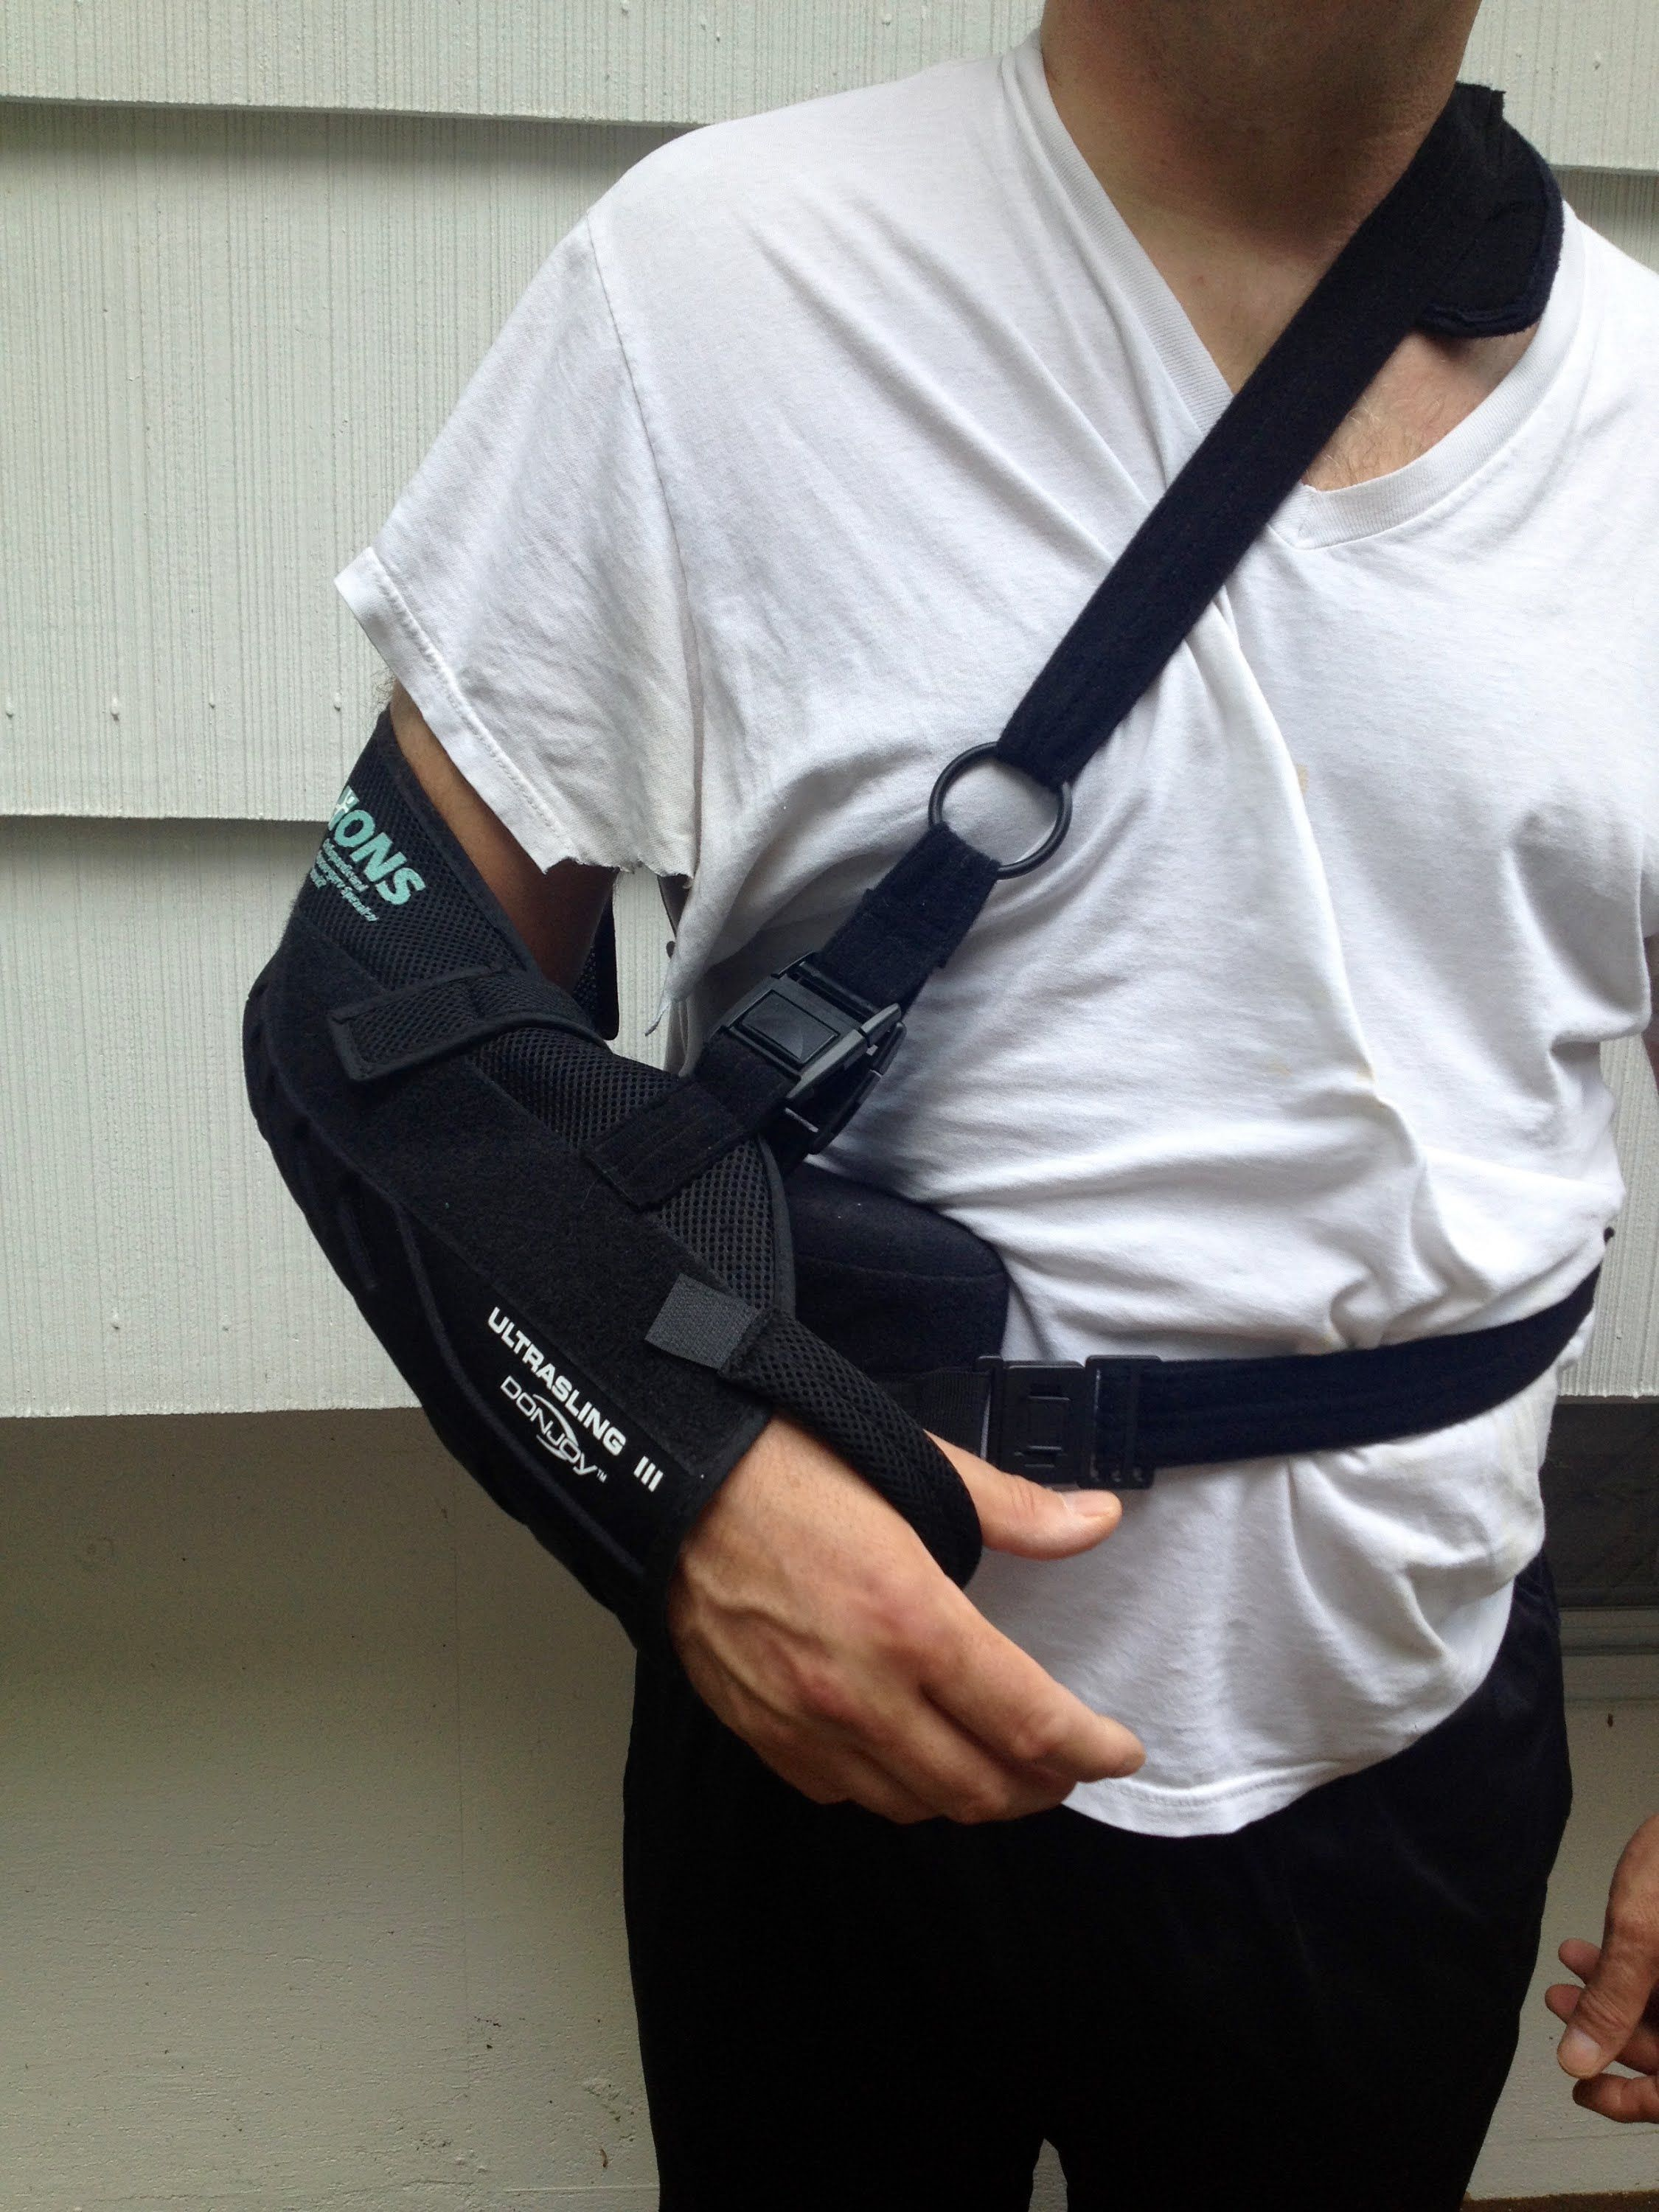 15a4b4515b79 Rotator Cuff Shoulder Surgery Experience - What to Expect, Helpful Tips .